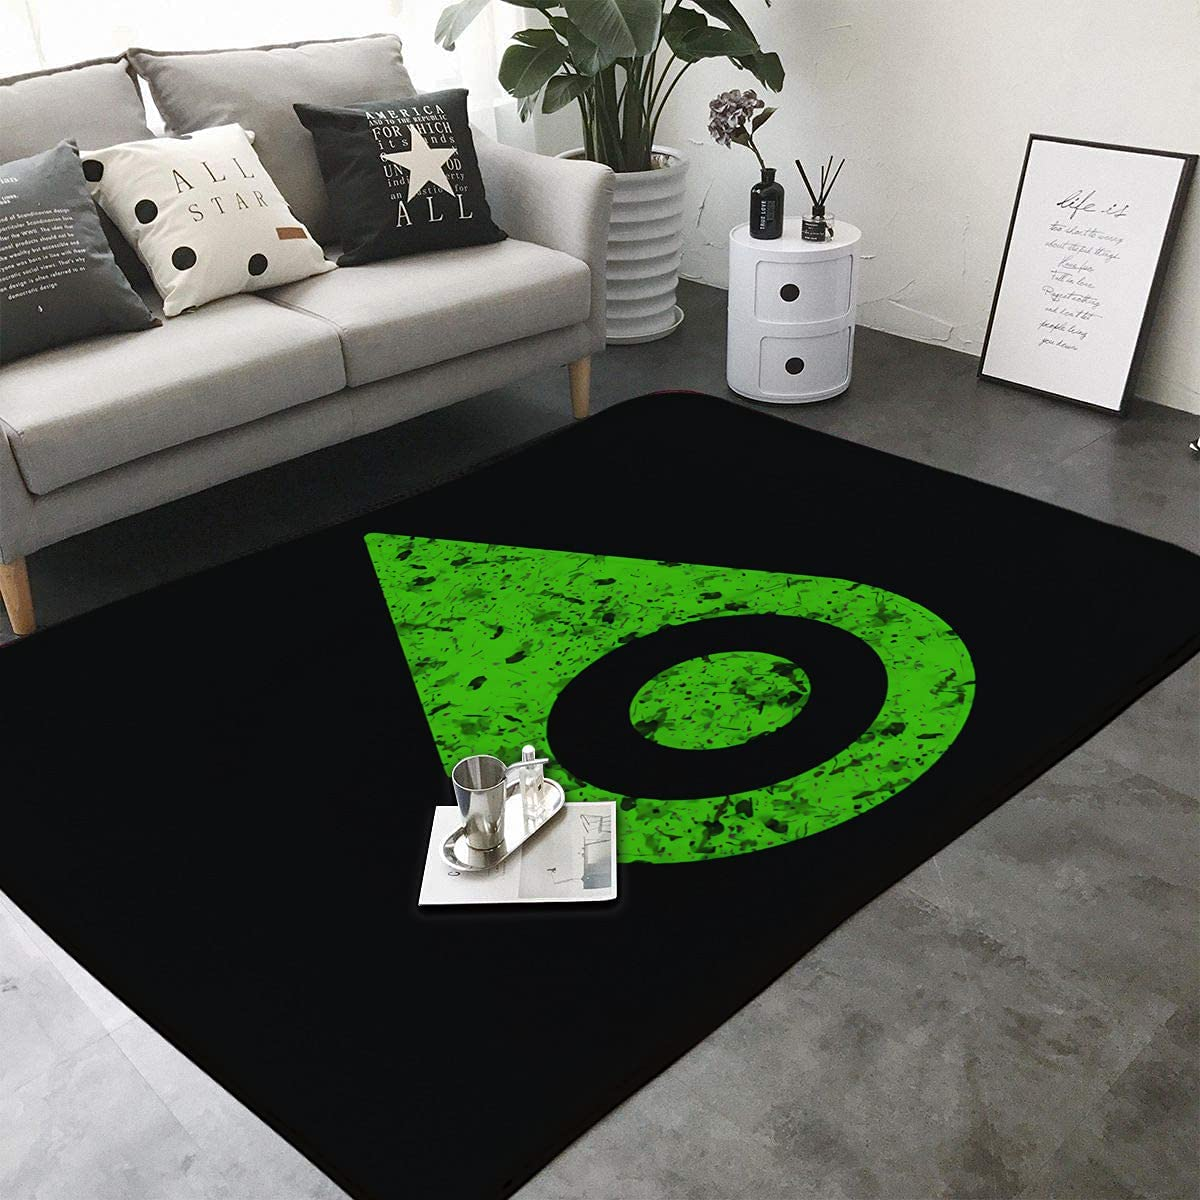 Tattered Sincerity-Kids Rugs for Bedroom Carpet Latest item Lowest price challenge Chair M Playroom